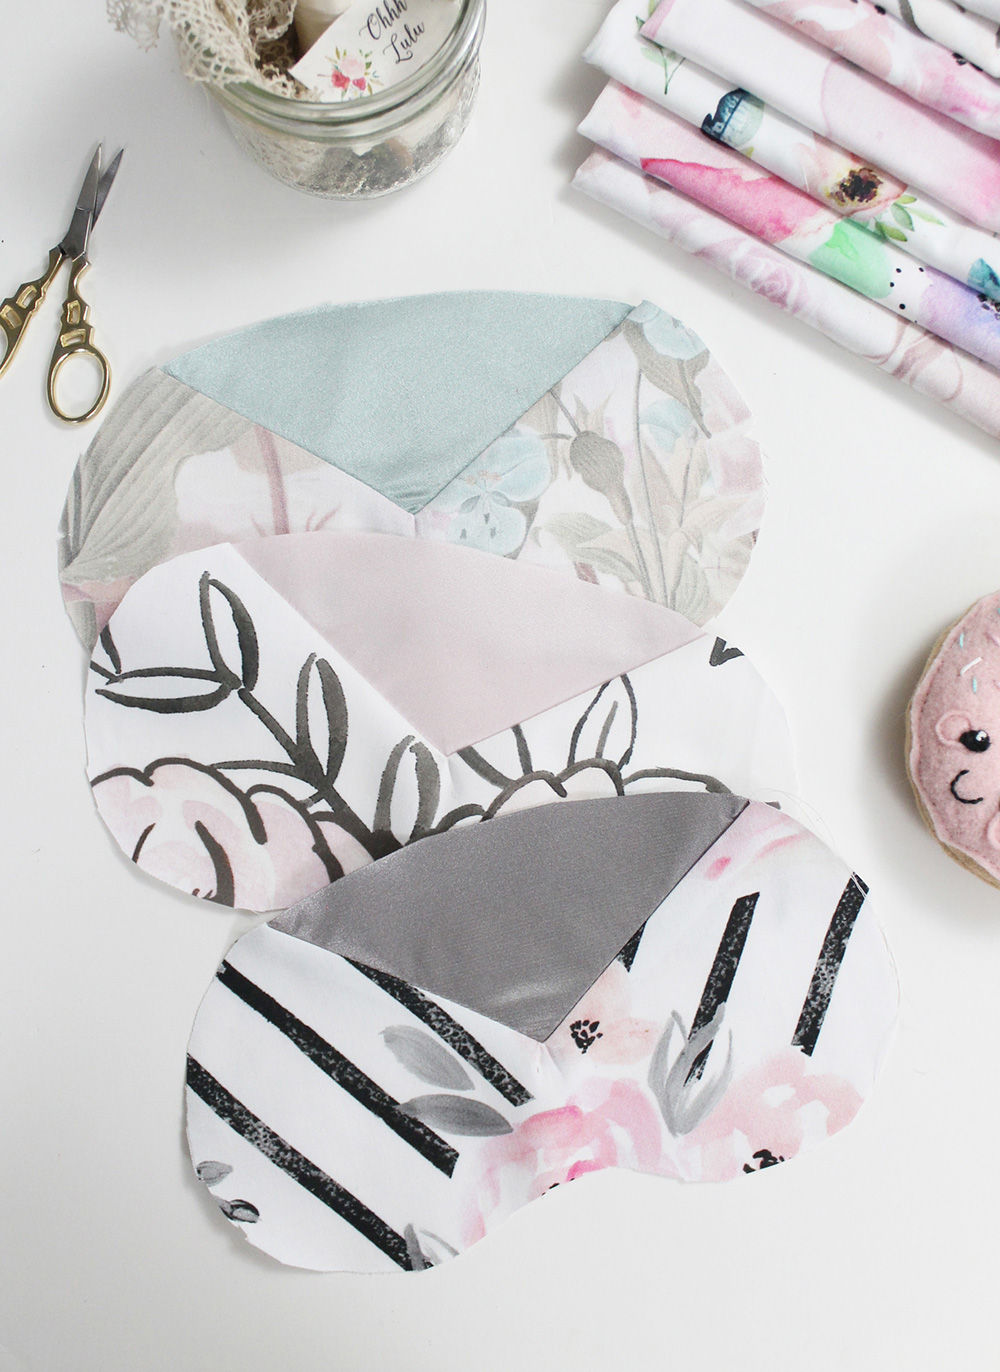 Press the sleep mask seams flat | Spoonflower Blog